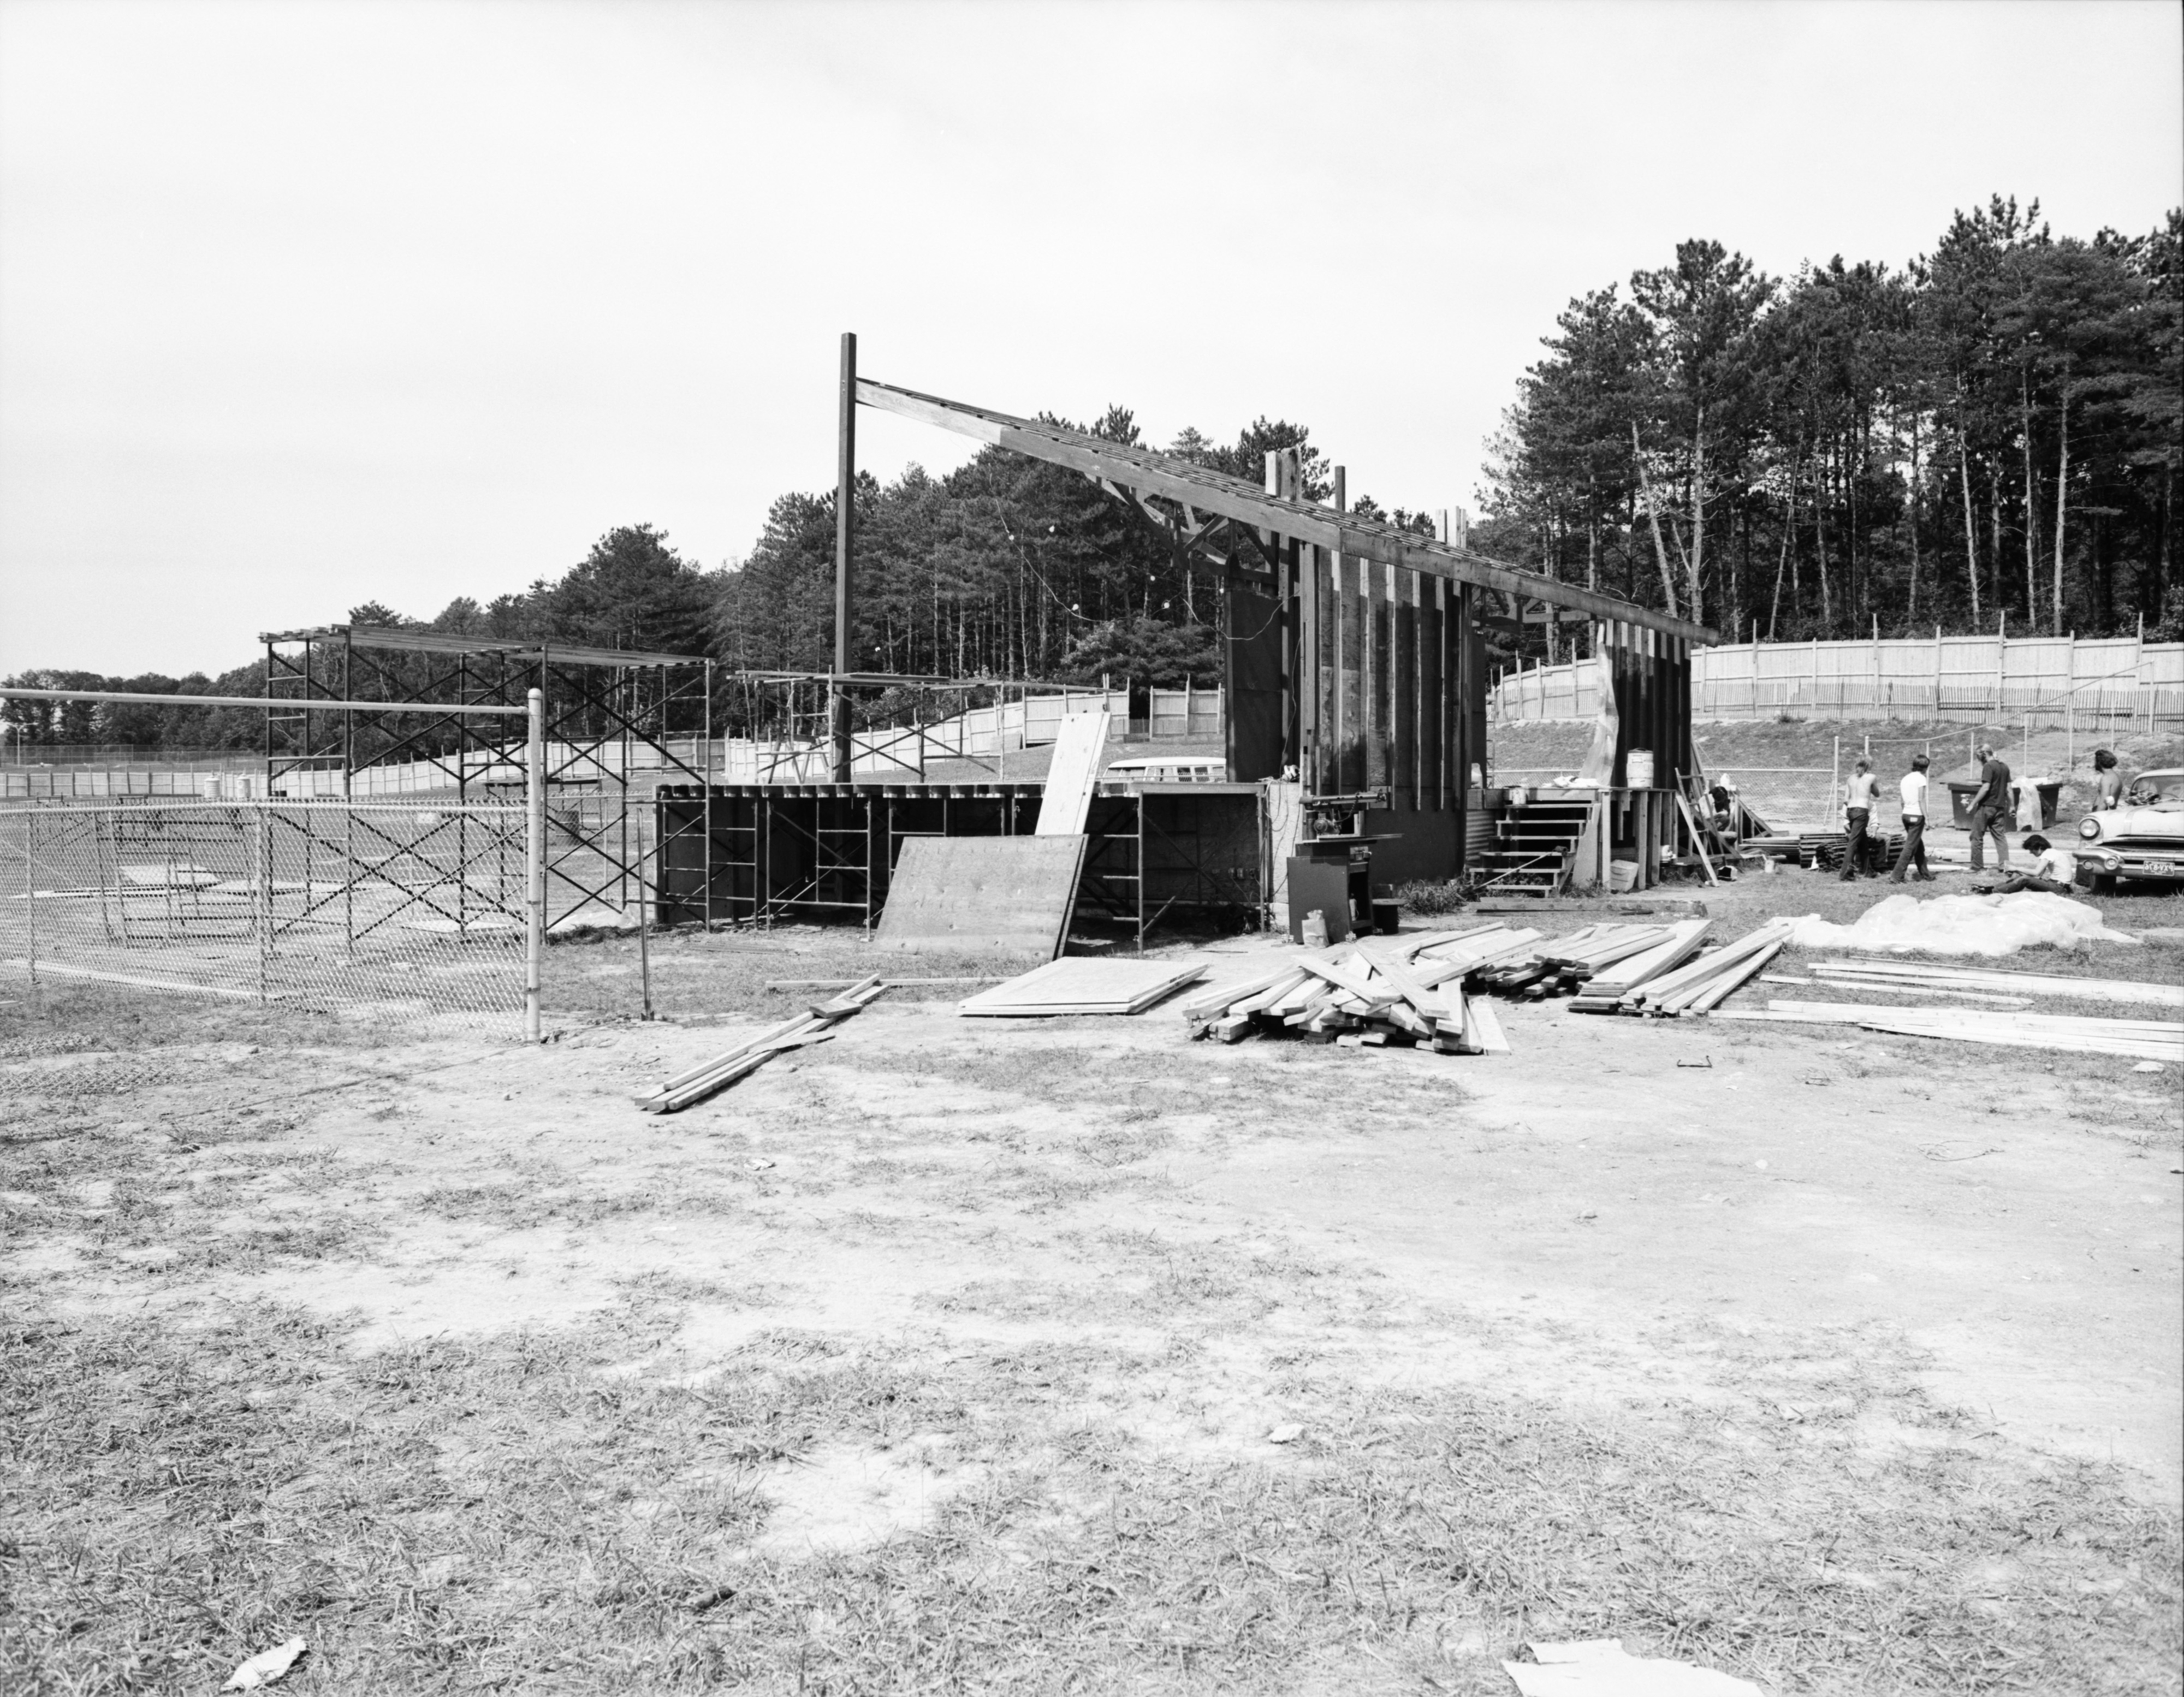 Workers Completing Bandstand Construction for 1972 Ann Arbor Blues & Jazz Festival image